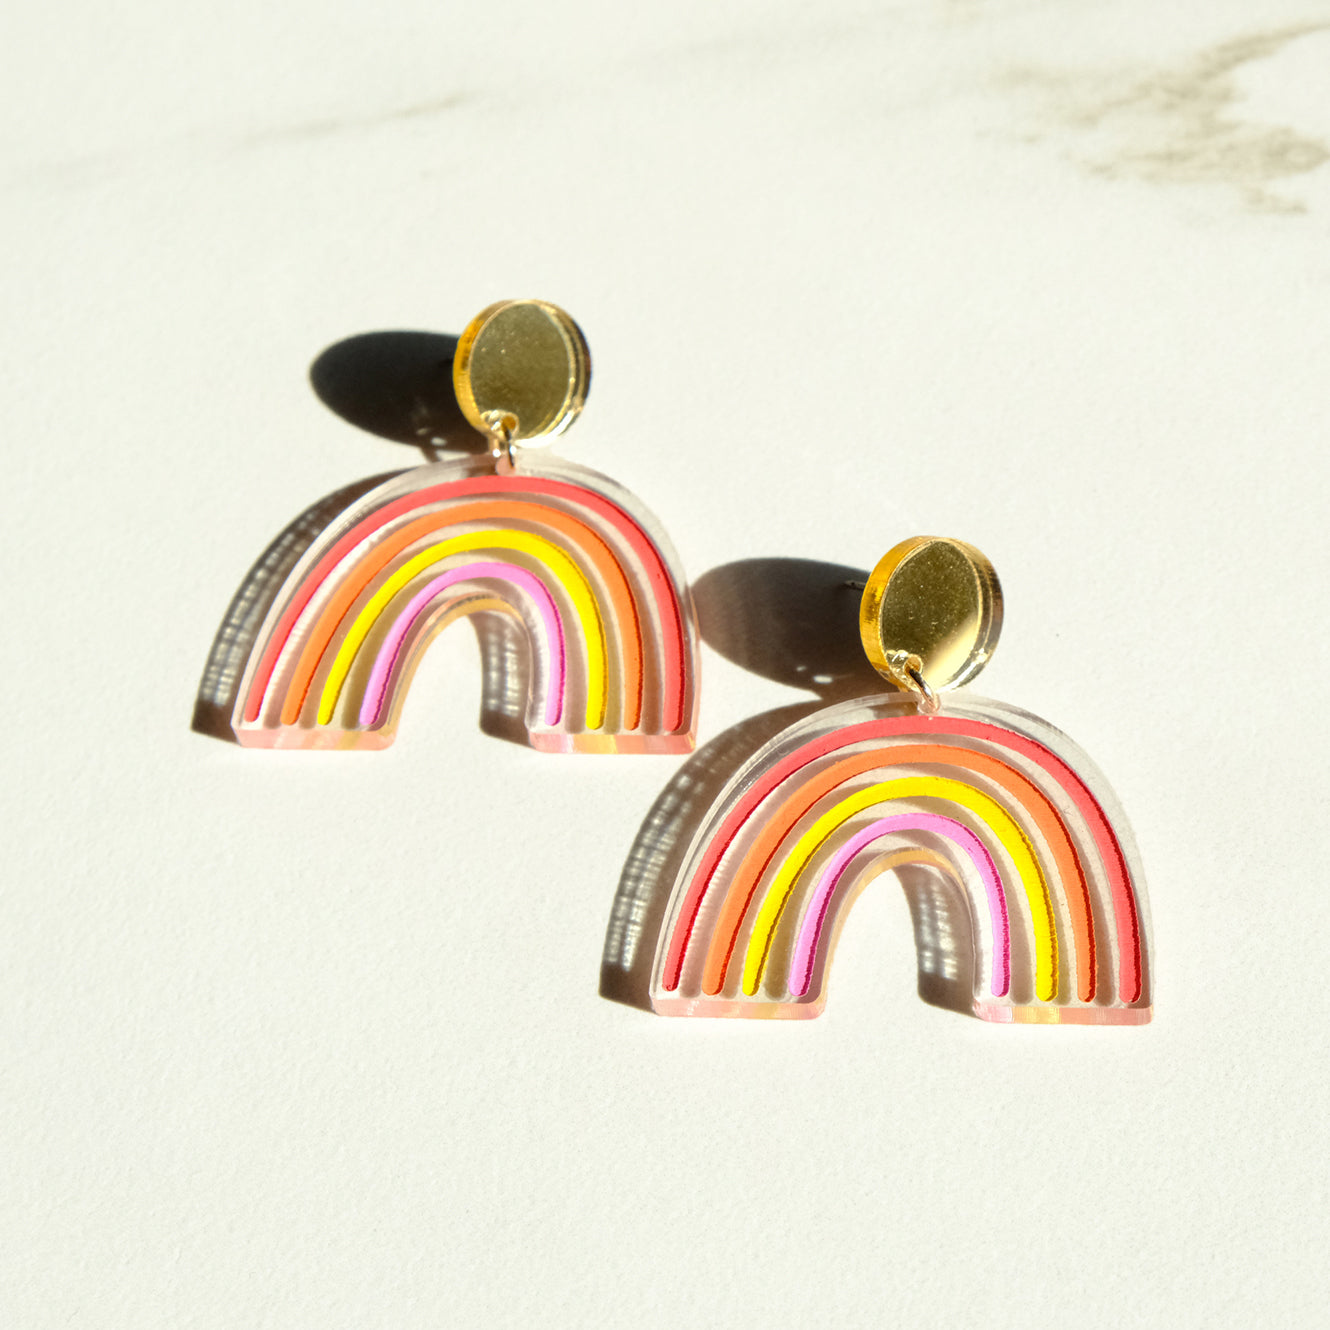 Sunset Rainbow Earrings - Dangles - SleepyMountain